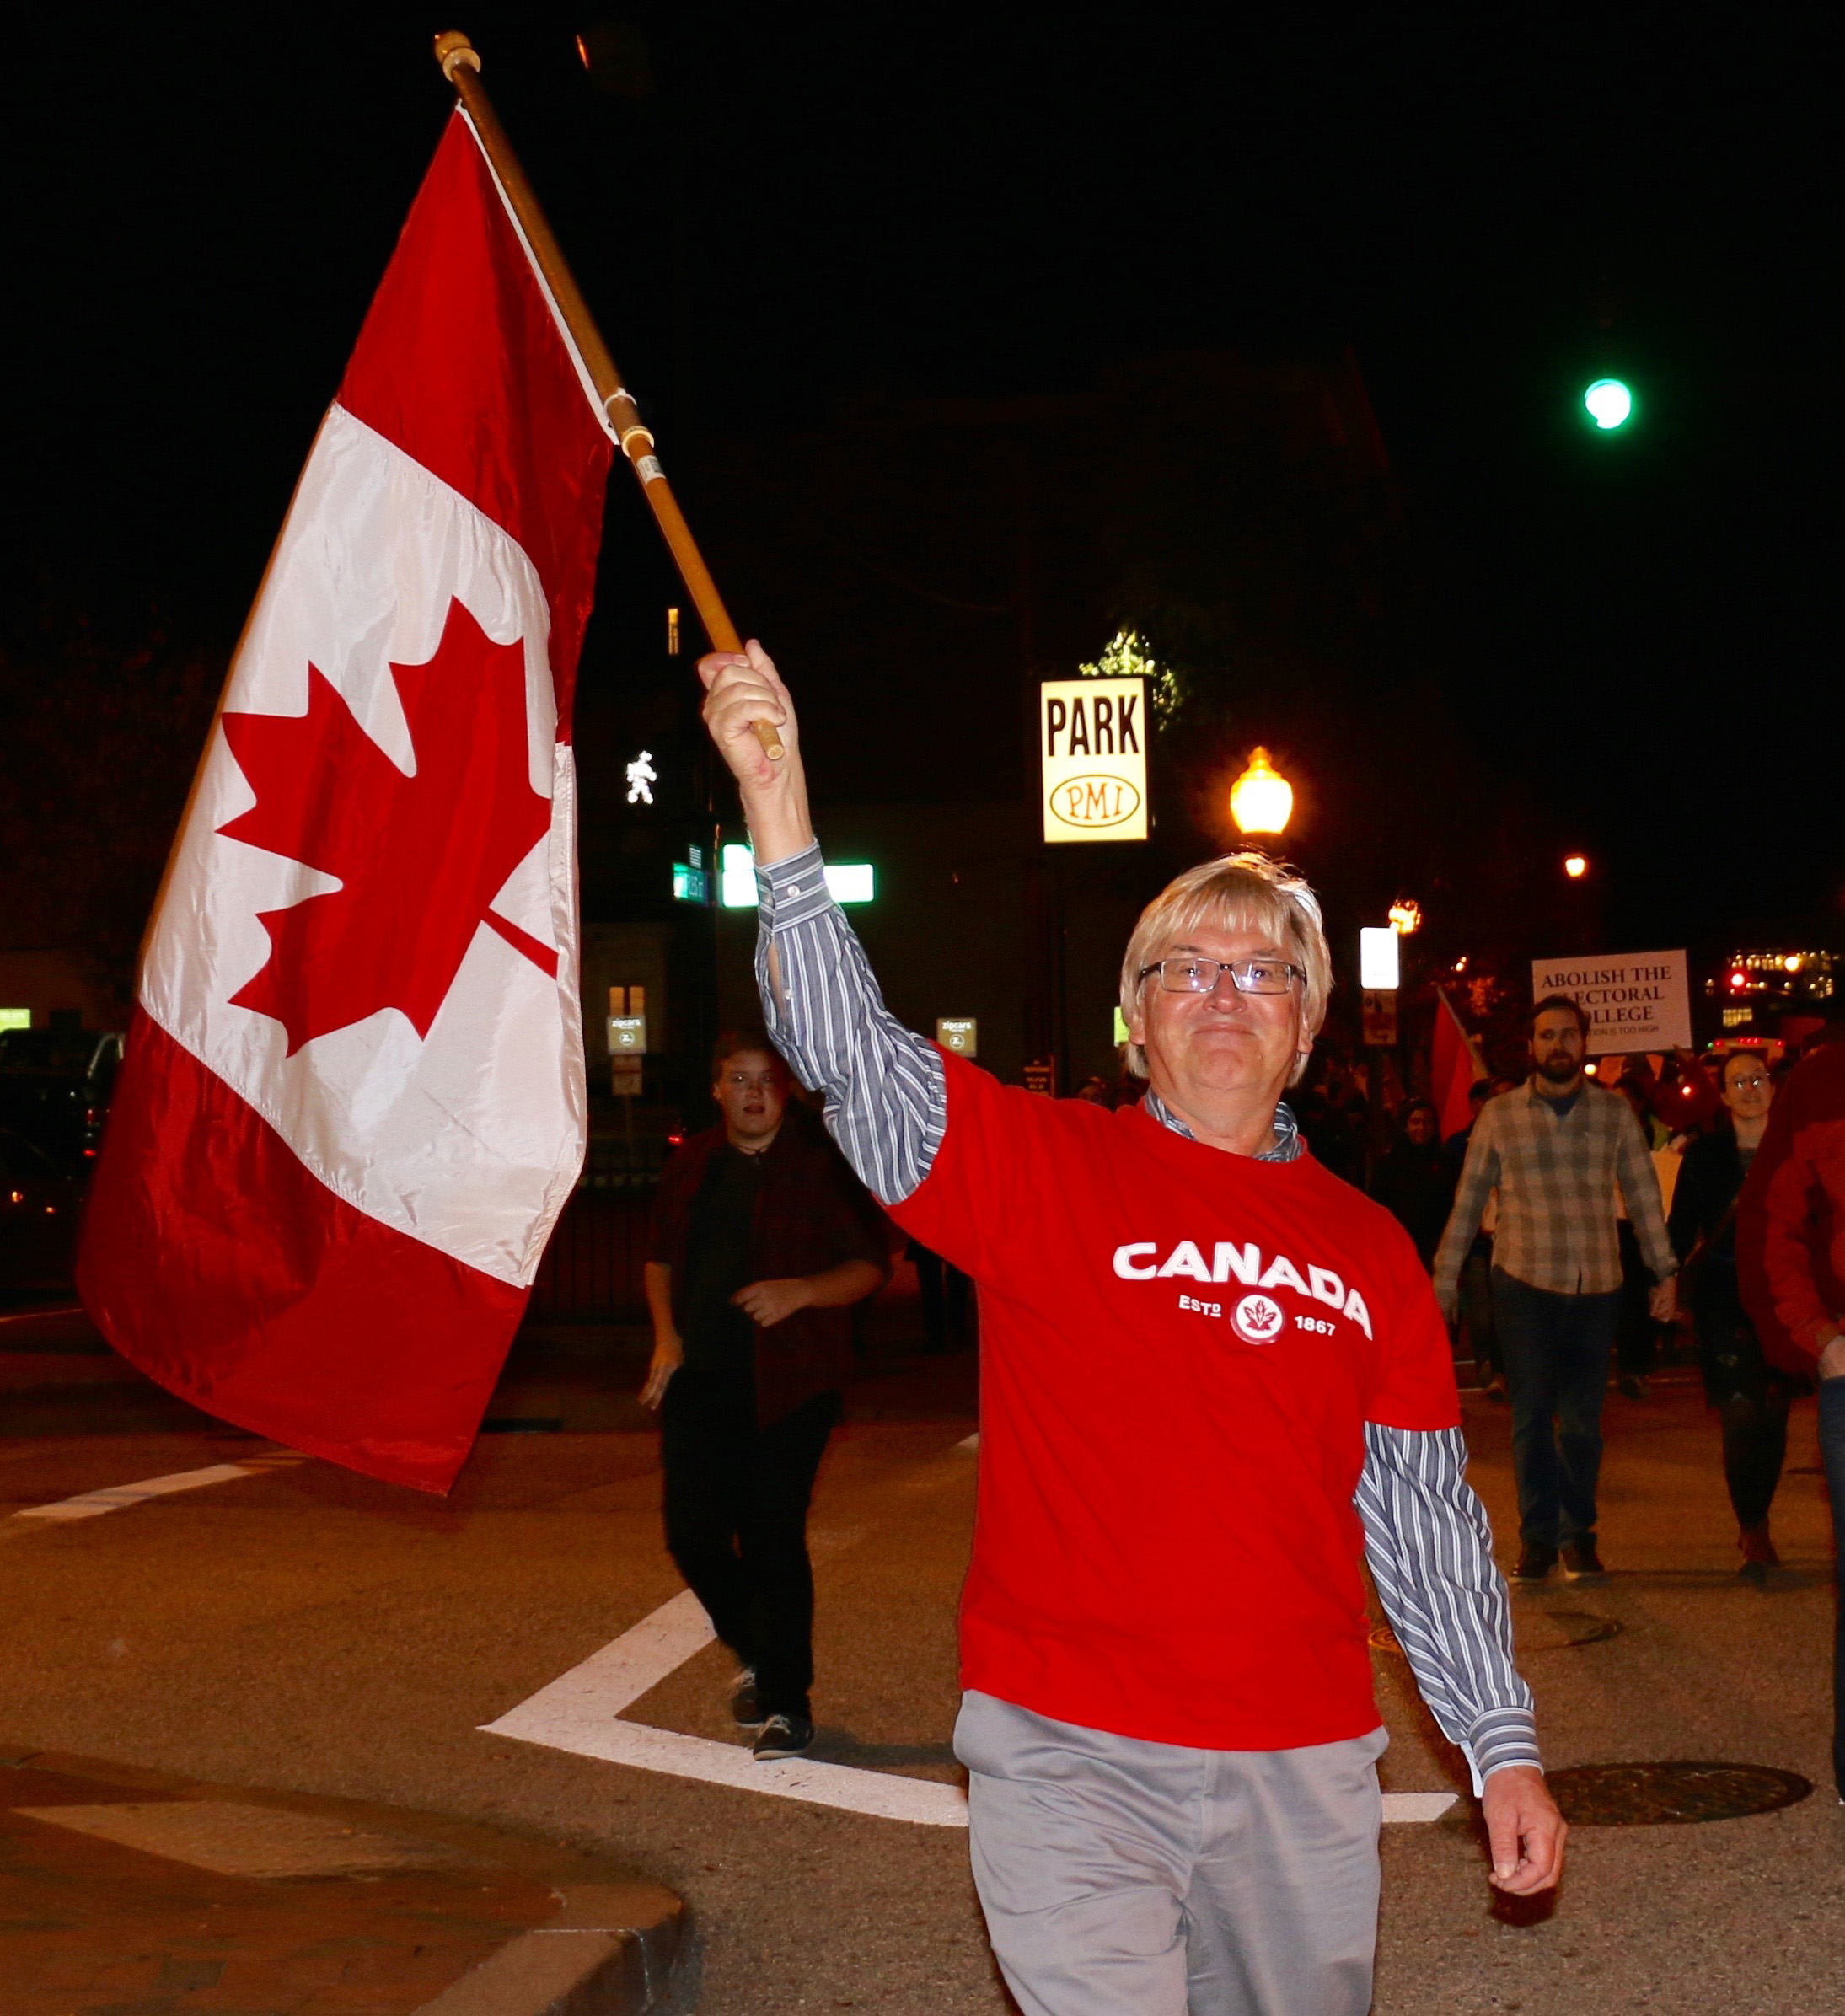 Steve, Allen, shows up his Canadian pride at rally. Photo by Tracy Smith.